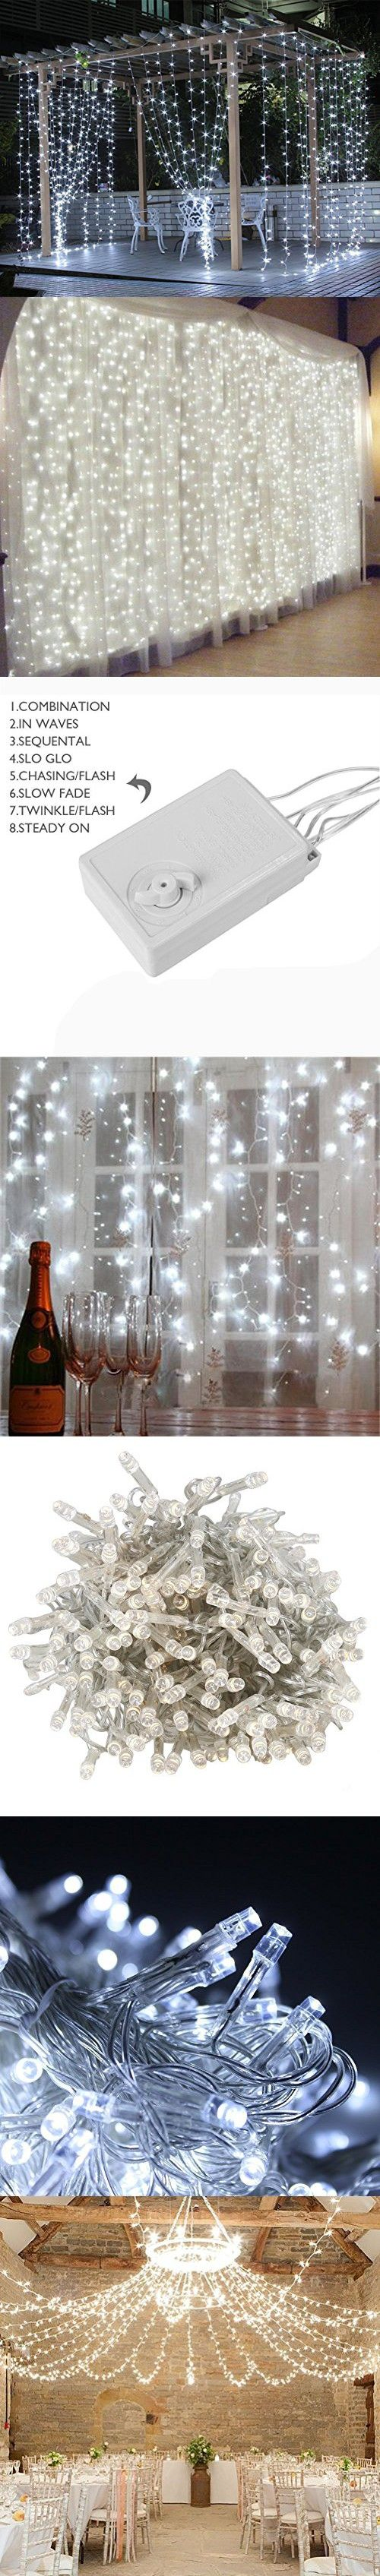 Blinngo LED Backdrop Lights, 300 LED 9.8ft x 9.8ft Waterproof Window Curtain Lights String Fairy Light for Wall, Bedroom, Wedding, Party, Holiday, Indoor, Outdoor Decorations (White)